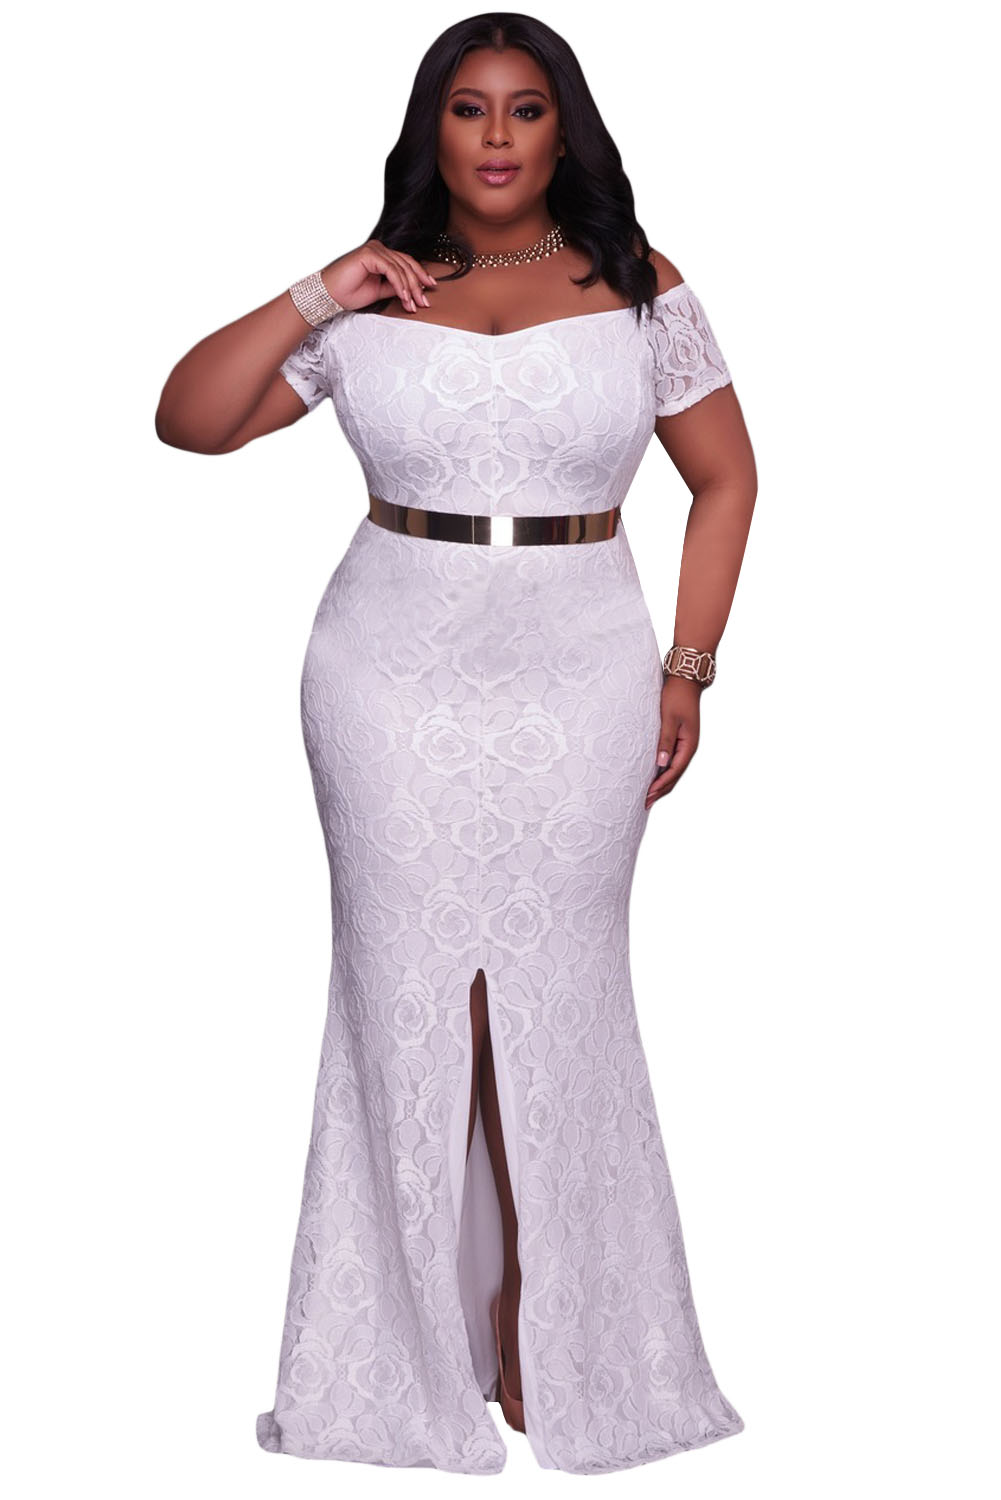 White Plus Size Off Shoulder Lace Gown - ZEKELA.com